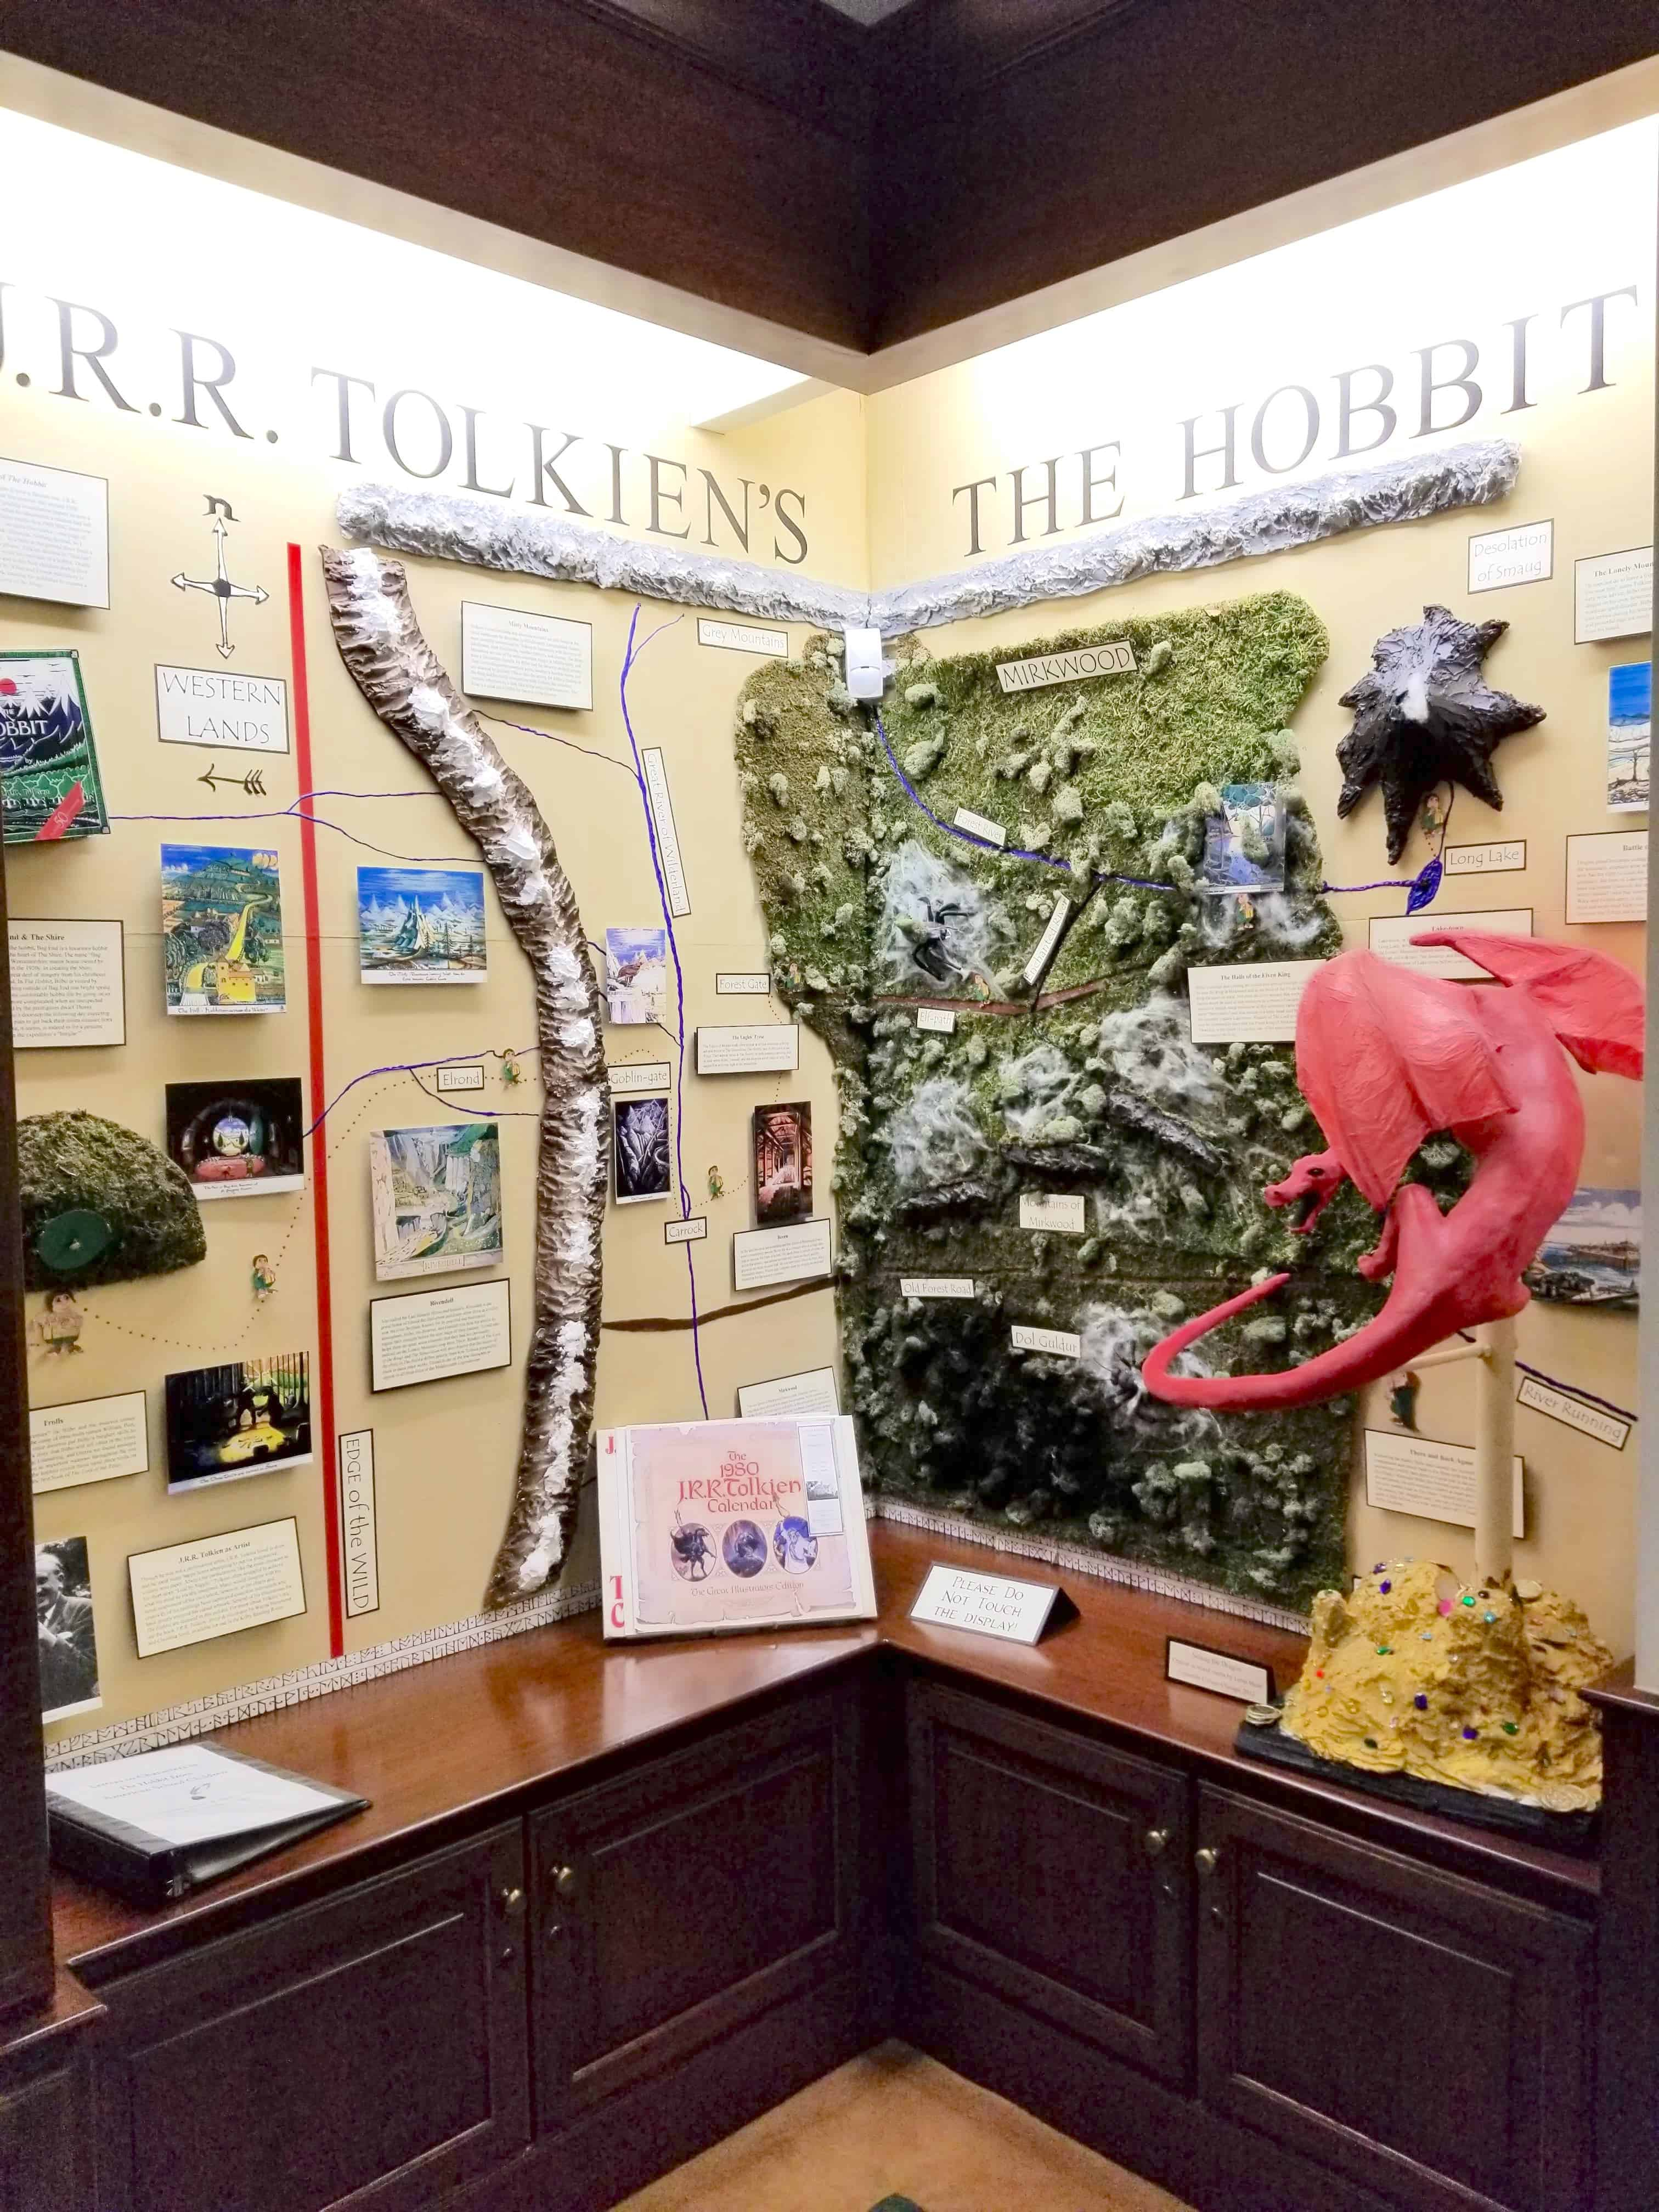 JRR Tolkien literary display